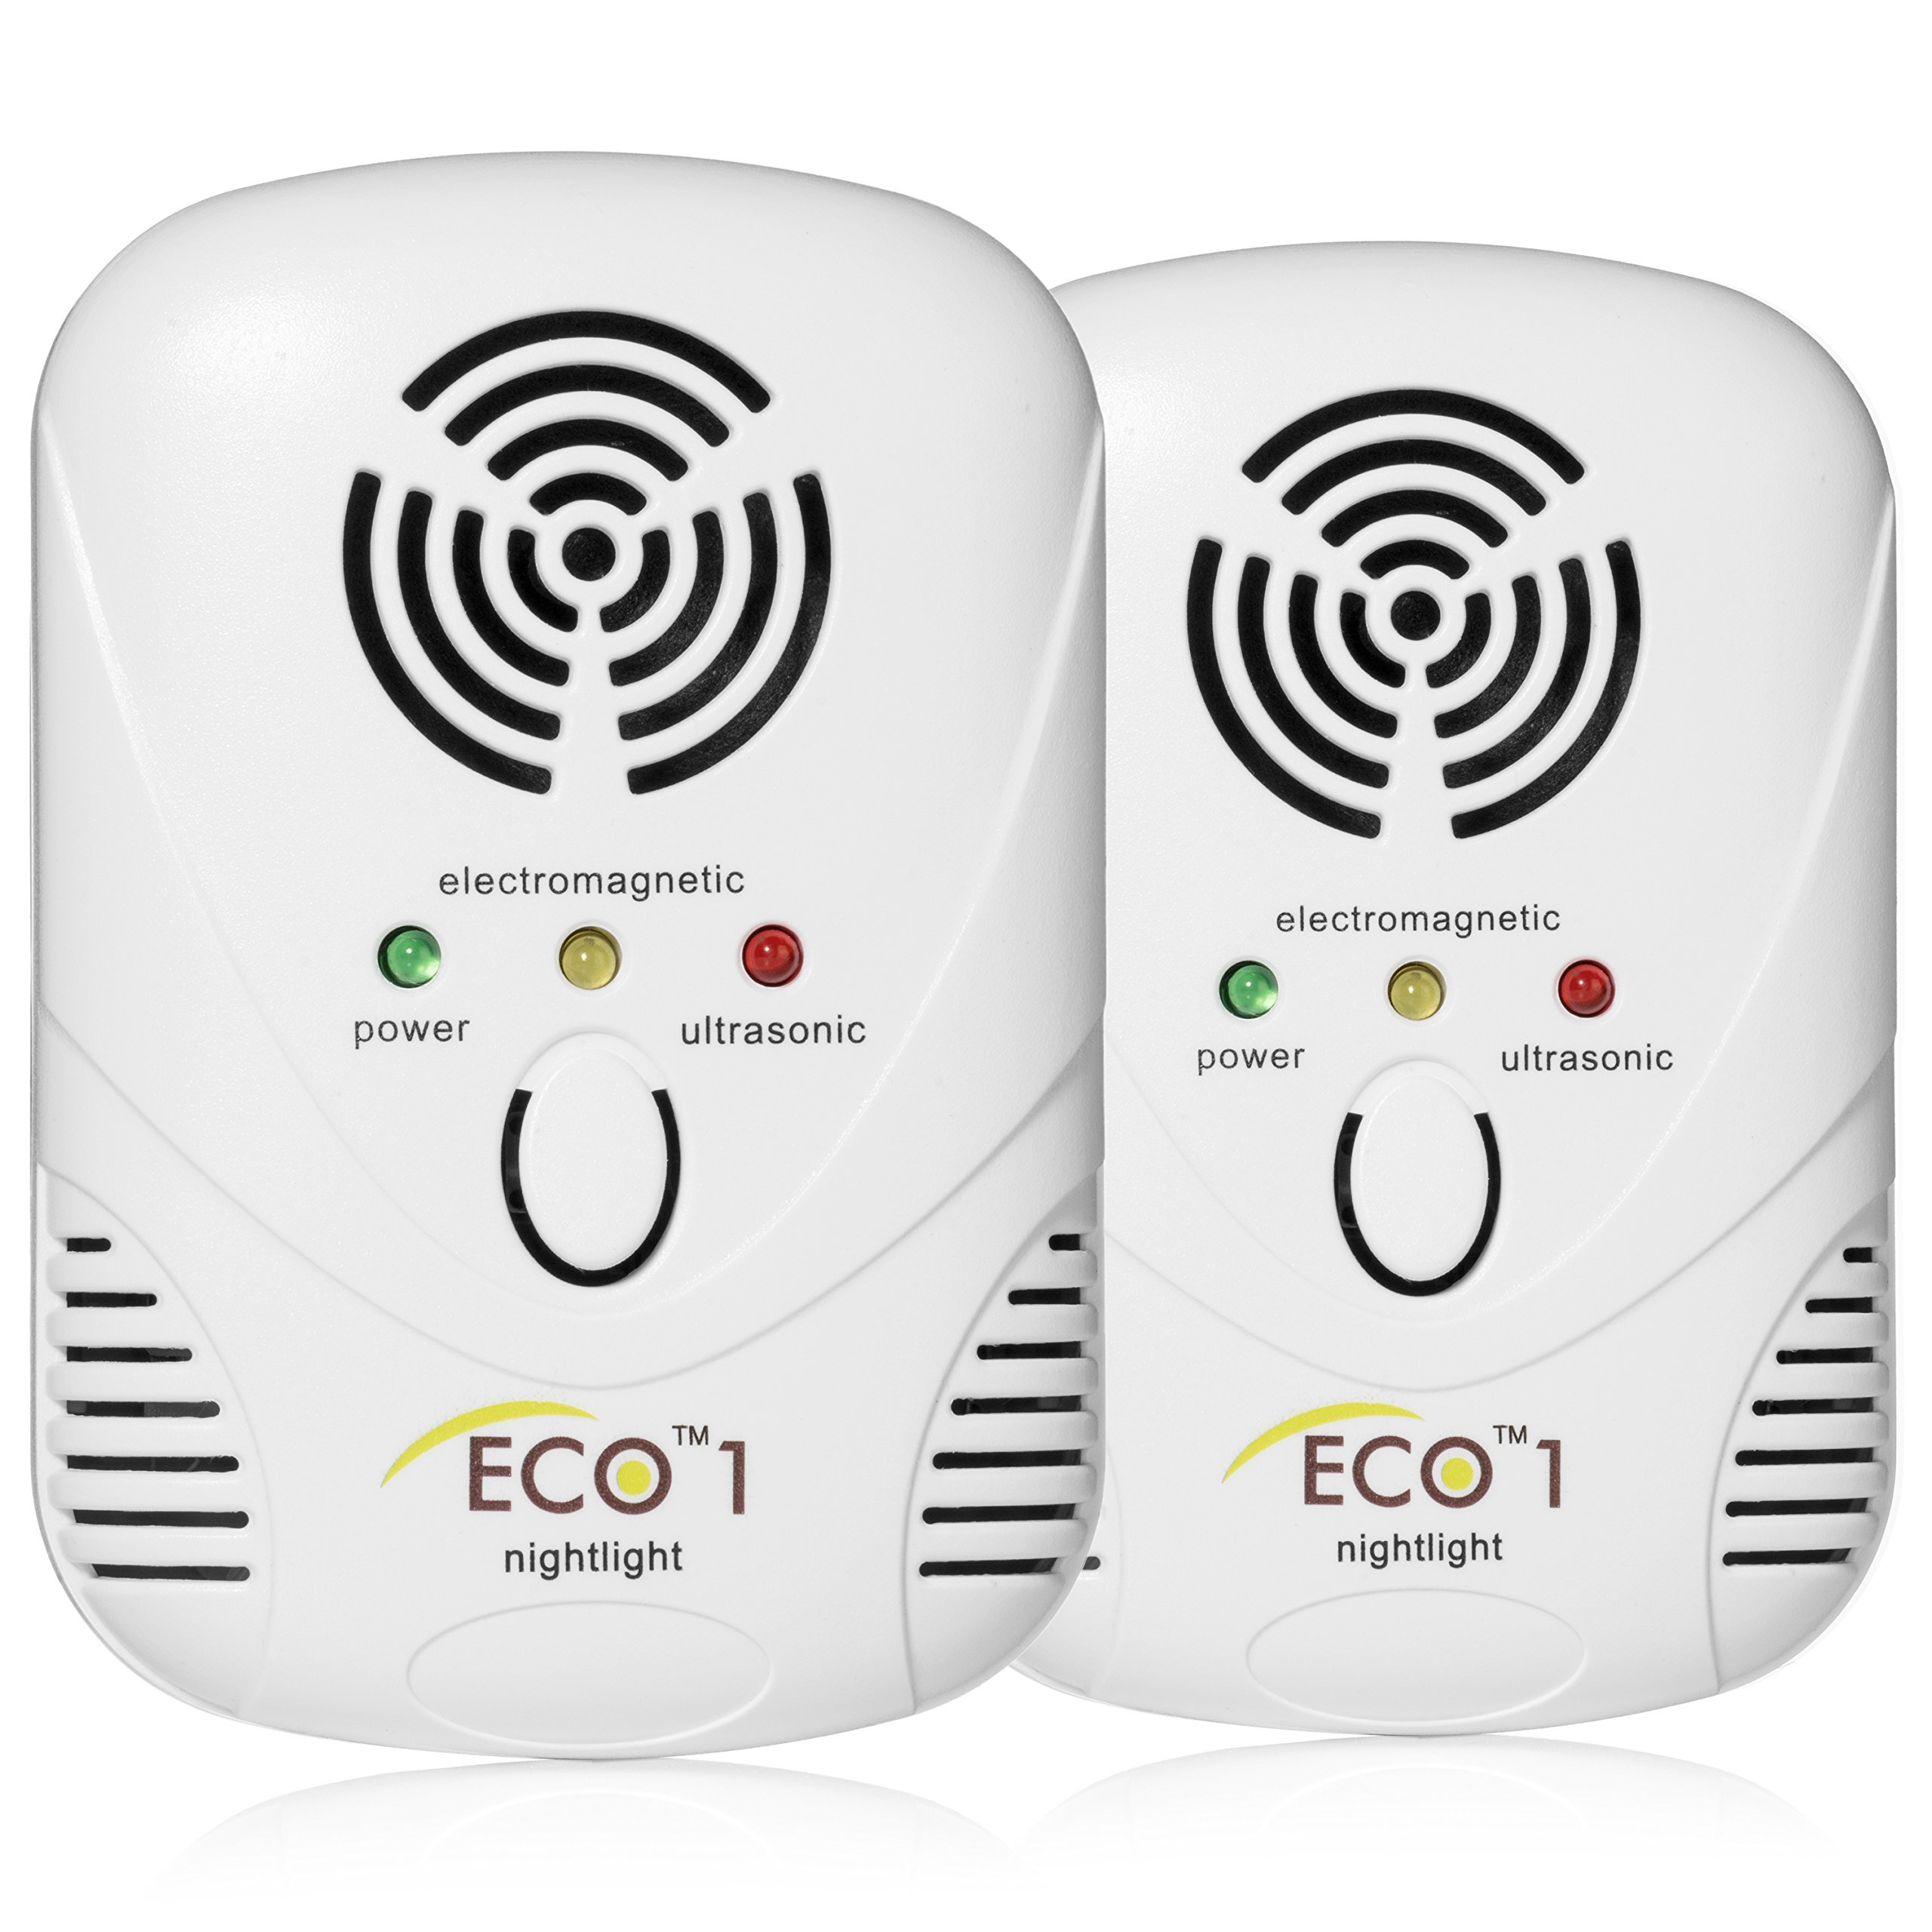 ECO 1 Ultrasonic Electromagnetic Pest Repeller Plug In with LED Night Light - Chemical Free Powerful In Door Repellent for Mice, Cockroaches, Ants, Mosquitoes, Rodents and more by East Allen Bay